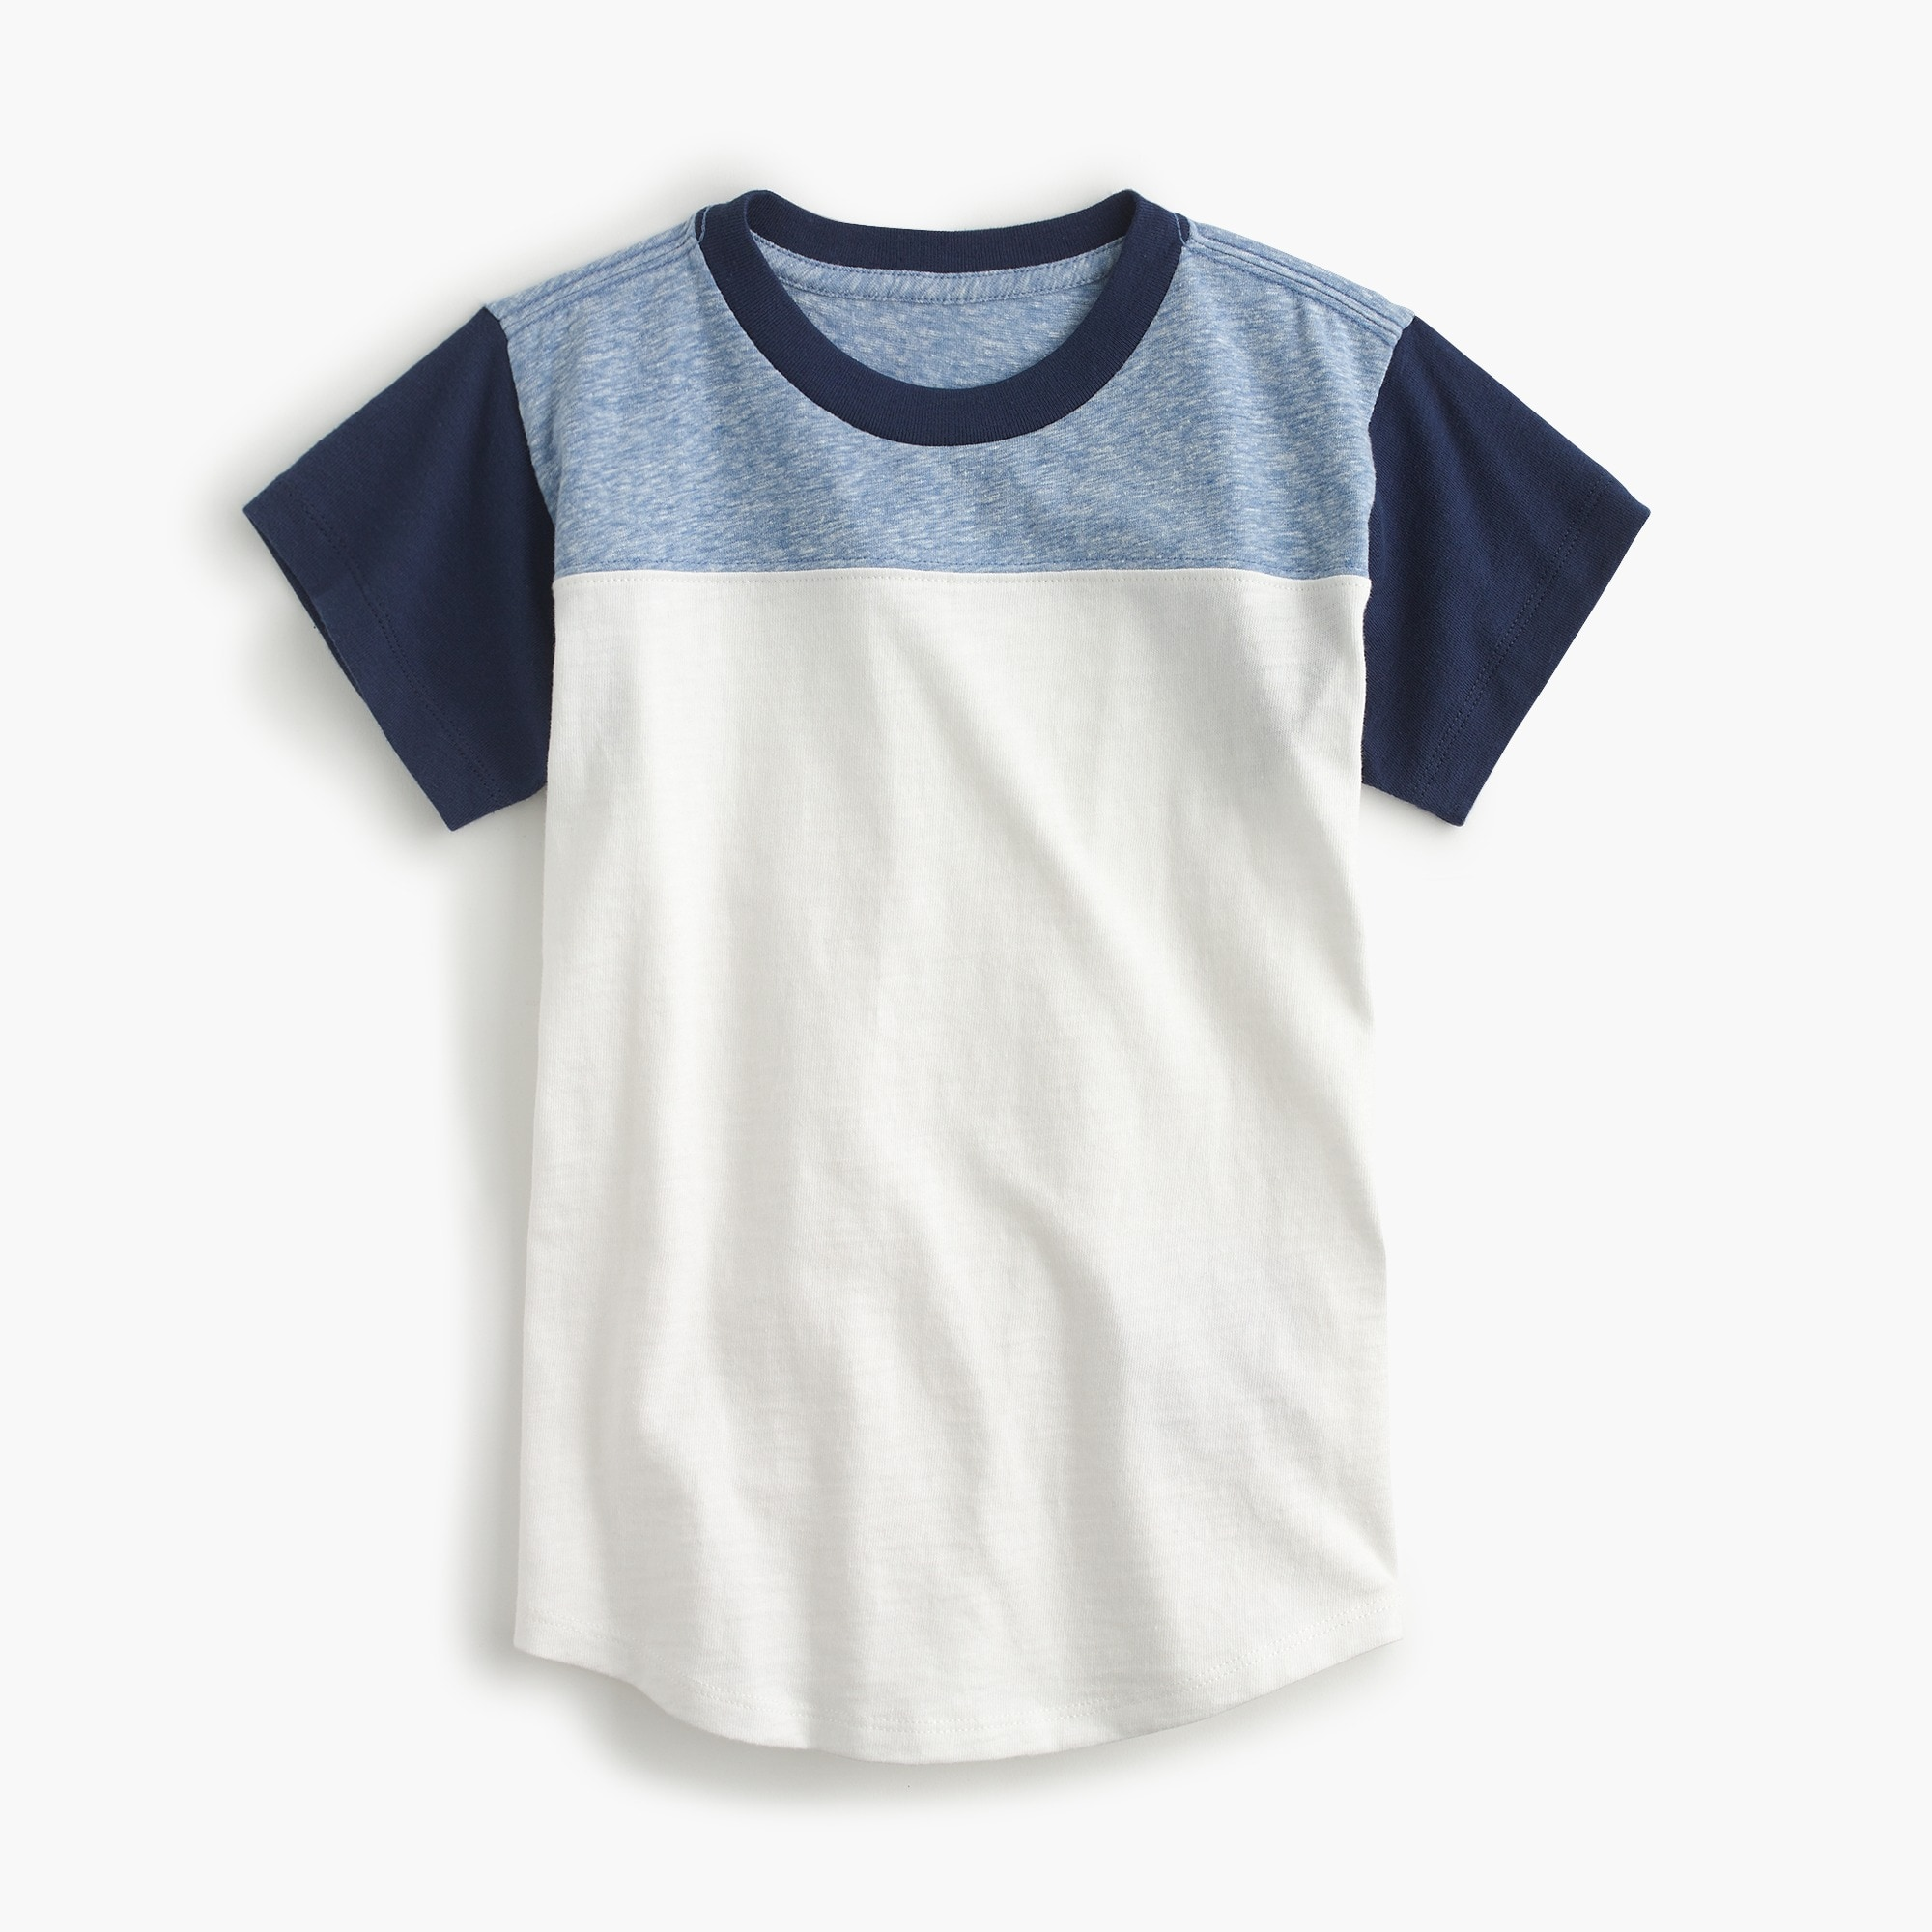 Boys' football T-shirt boy new arrivals c